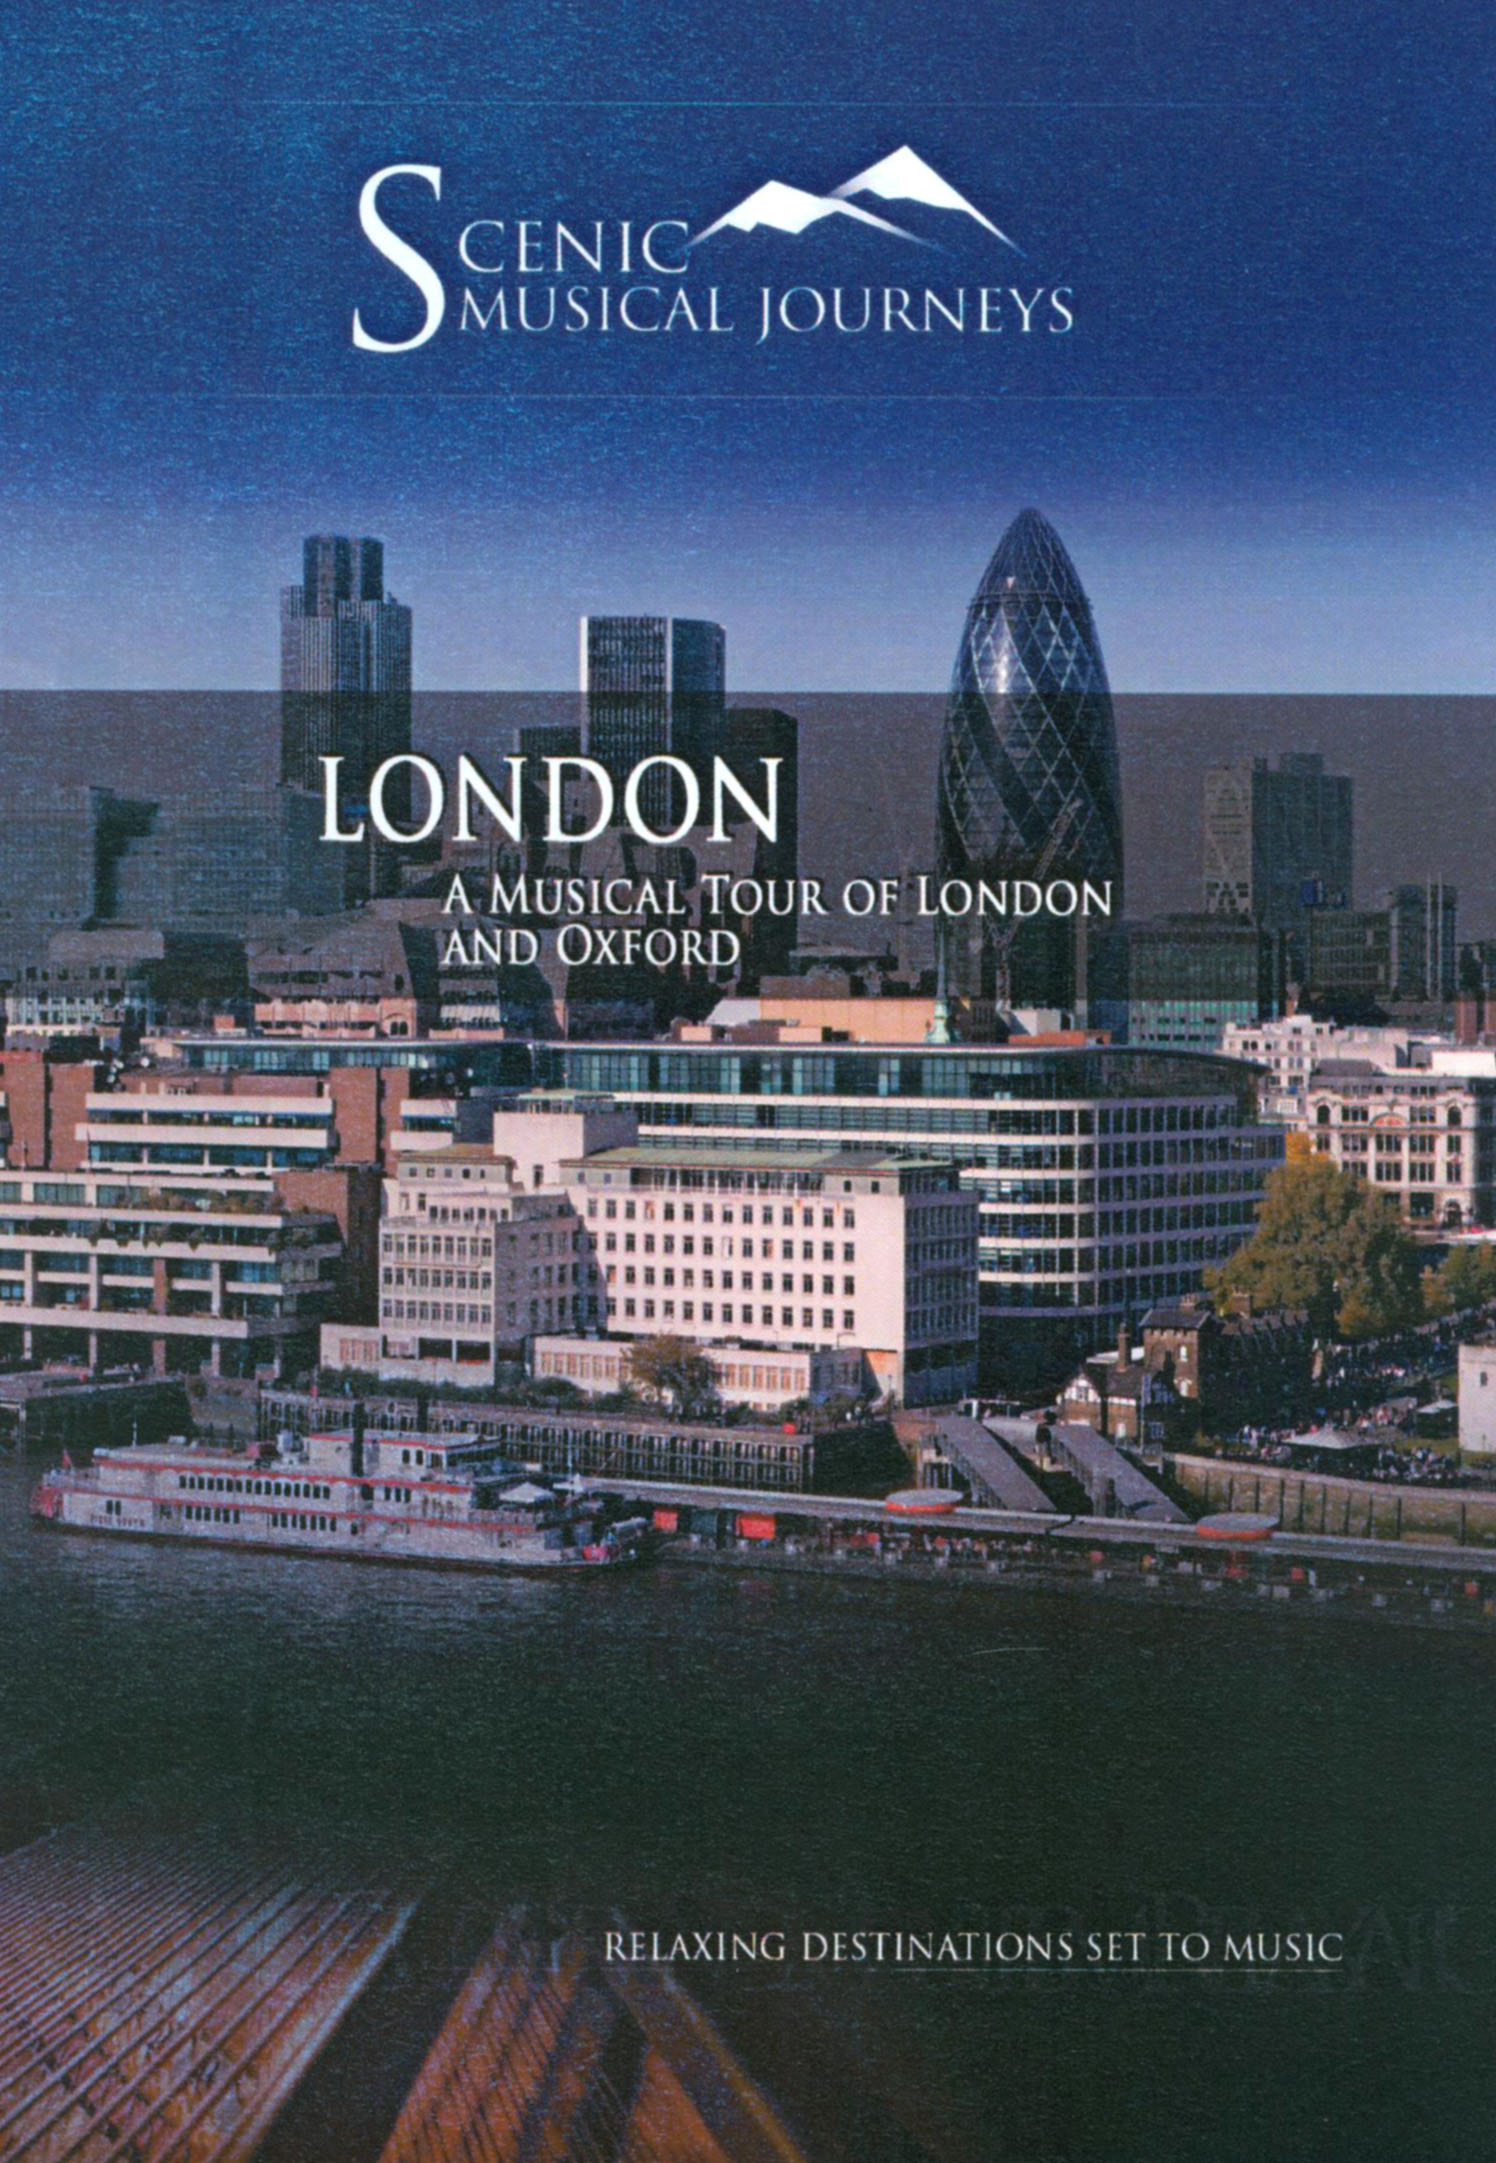 Scenic Musical Journeys: London - A Musical Tour of London and Oxford